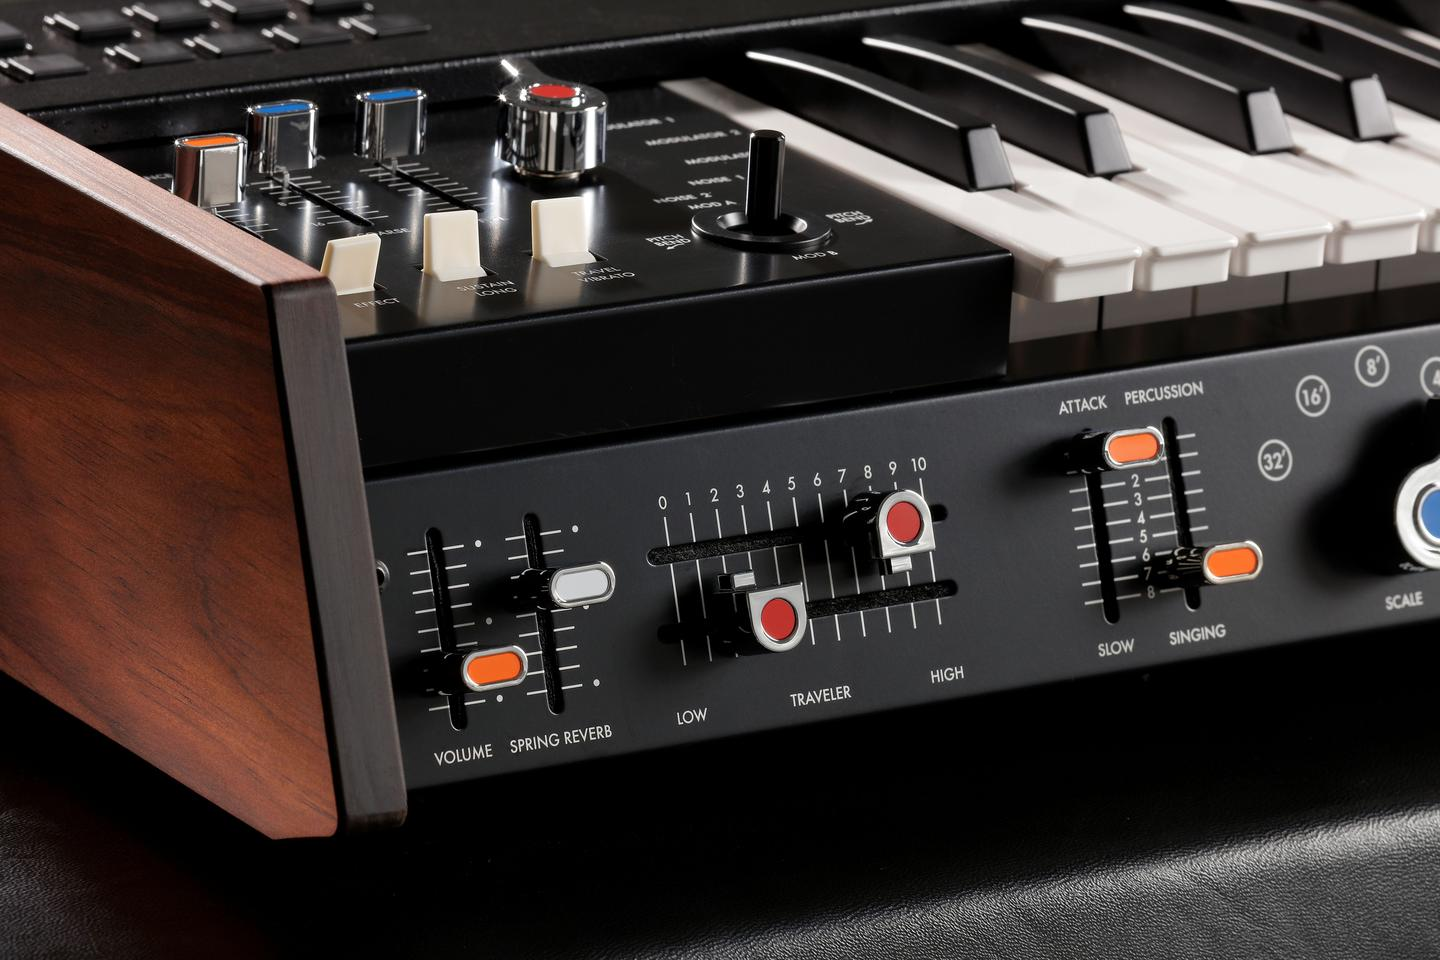 The miniKorg 700FS features the Traveler controls for adjusting filter cutoffs